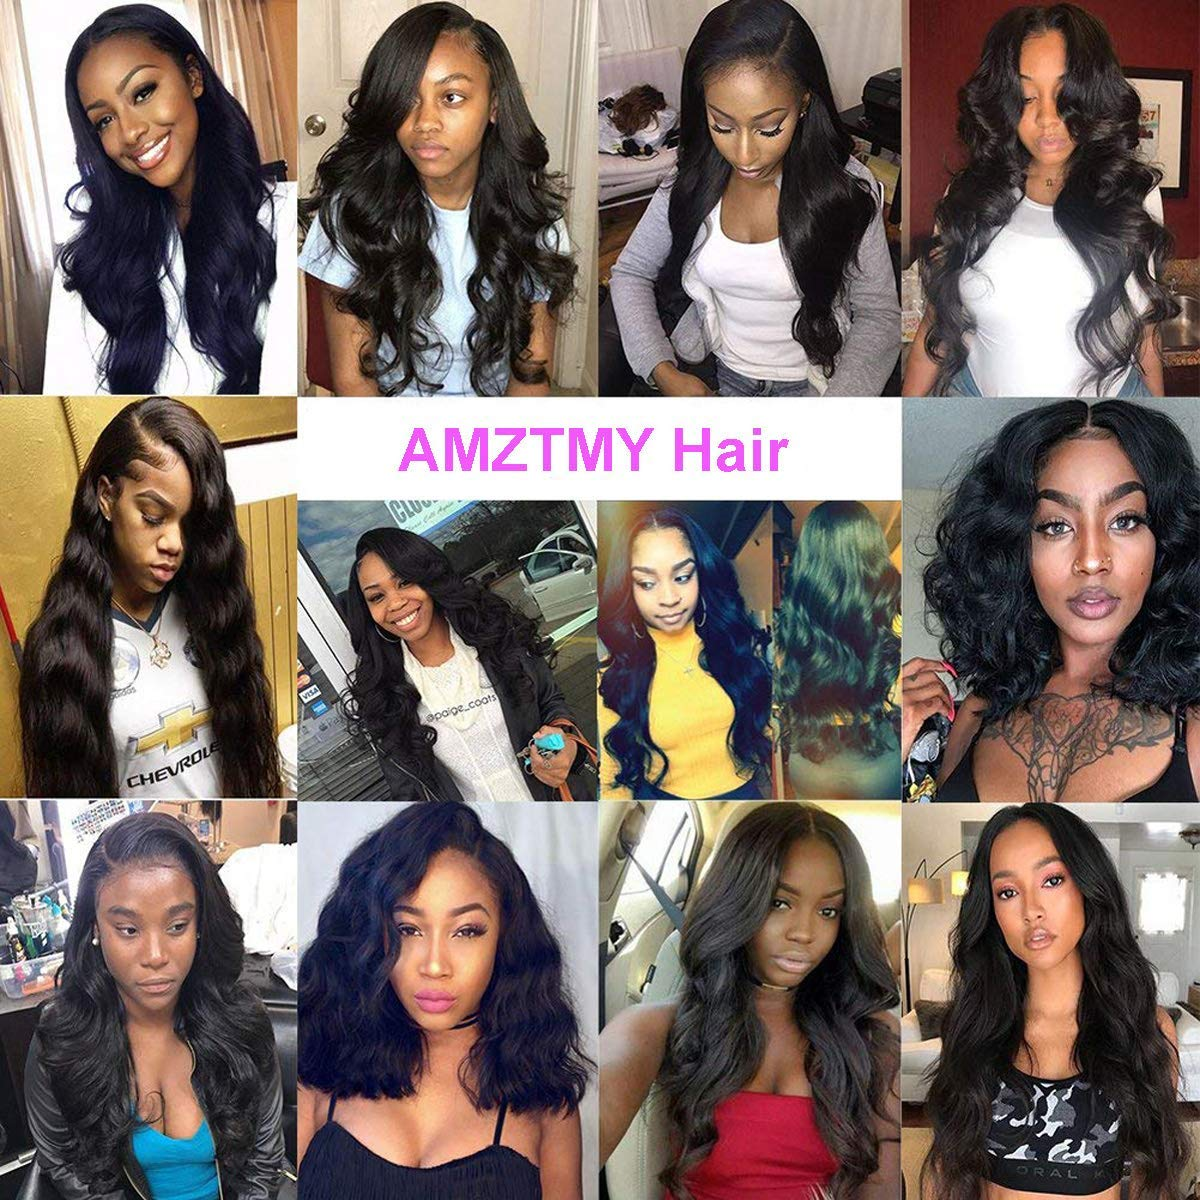 AMZTMY Brazilian Virgin Body Wave Hair 3 Bundles with Closure 8A 100% Unprocessed Human Hair Weave Bundles with 4x4 Swiss Lace Closure Hair Extensions Natural Color (10,12,14+10 Three Part)